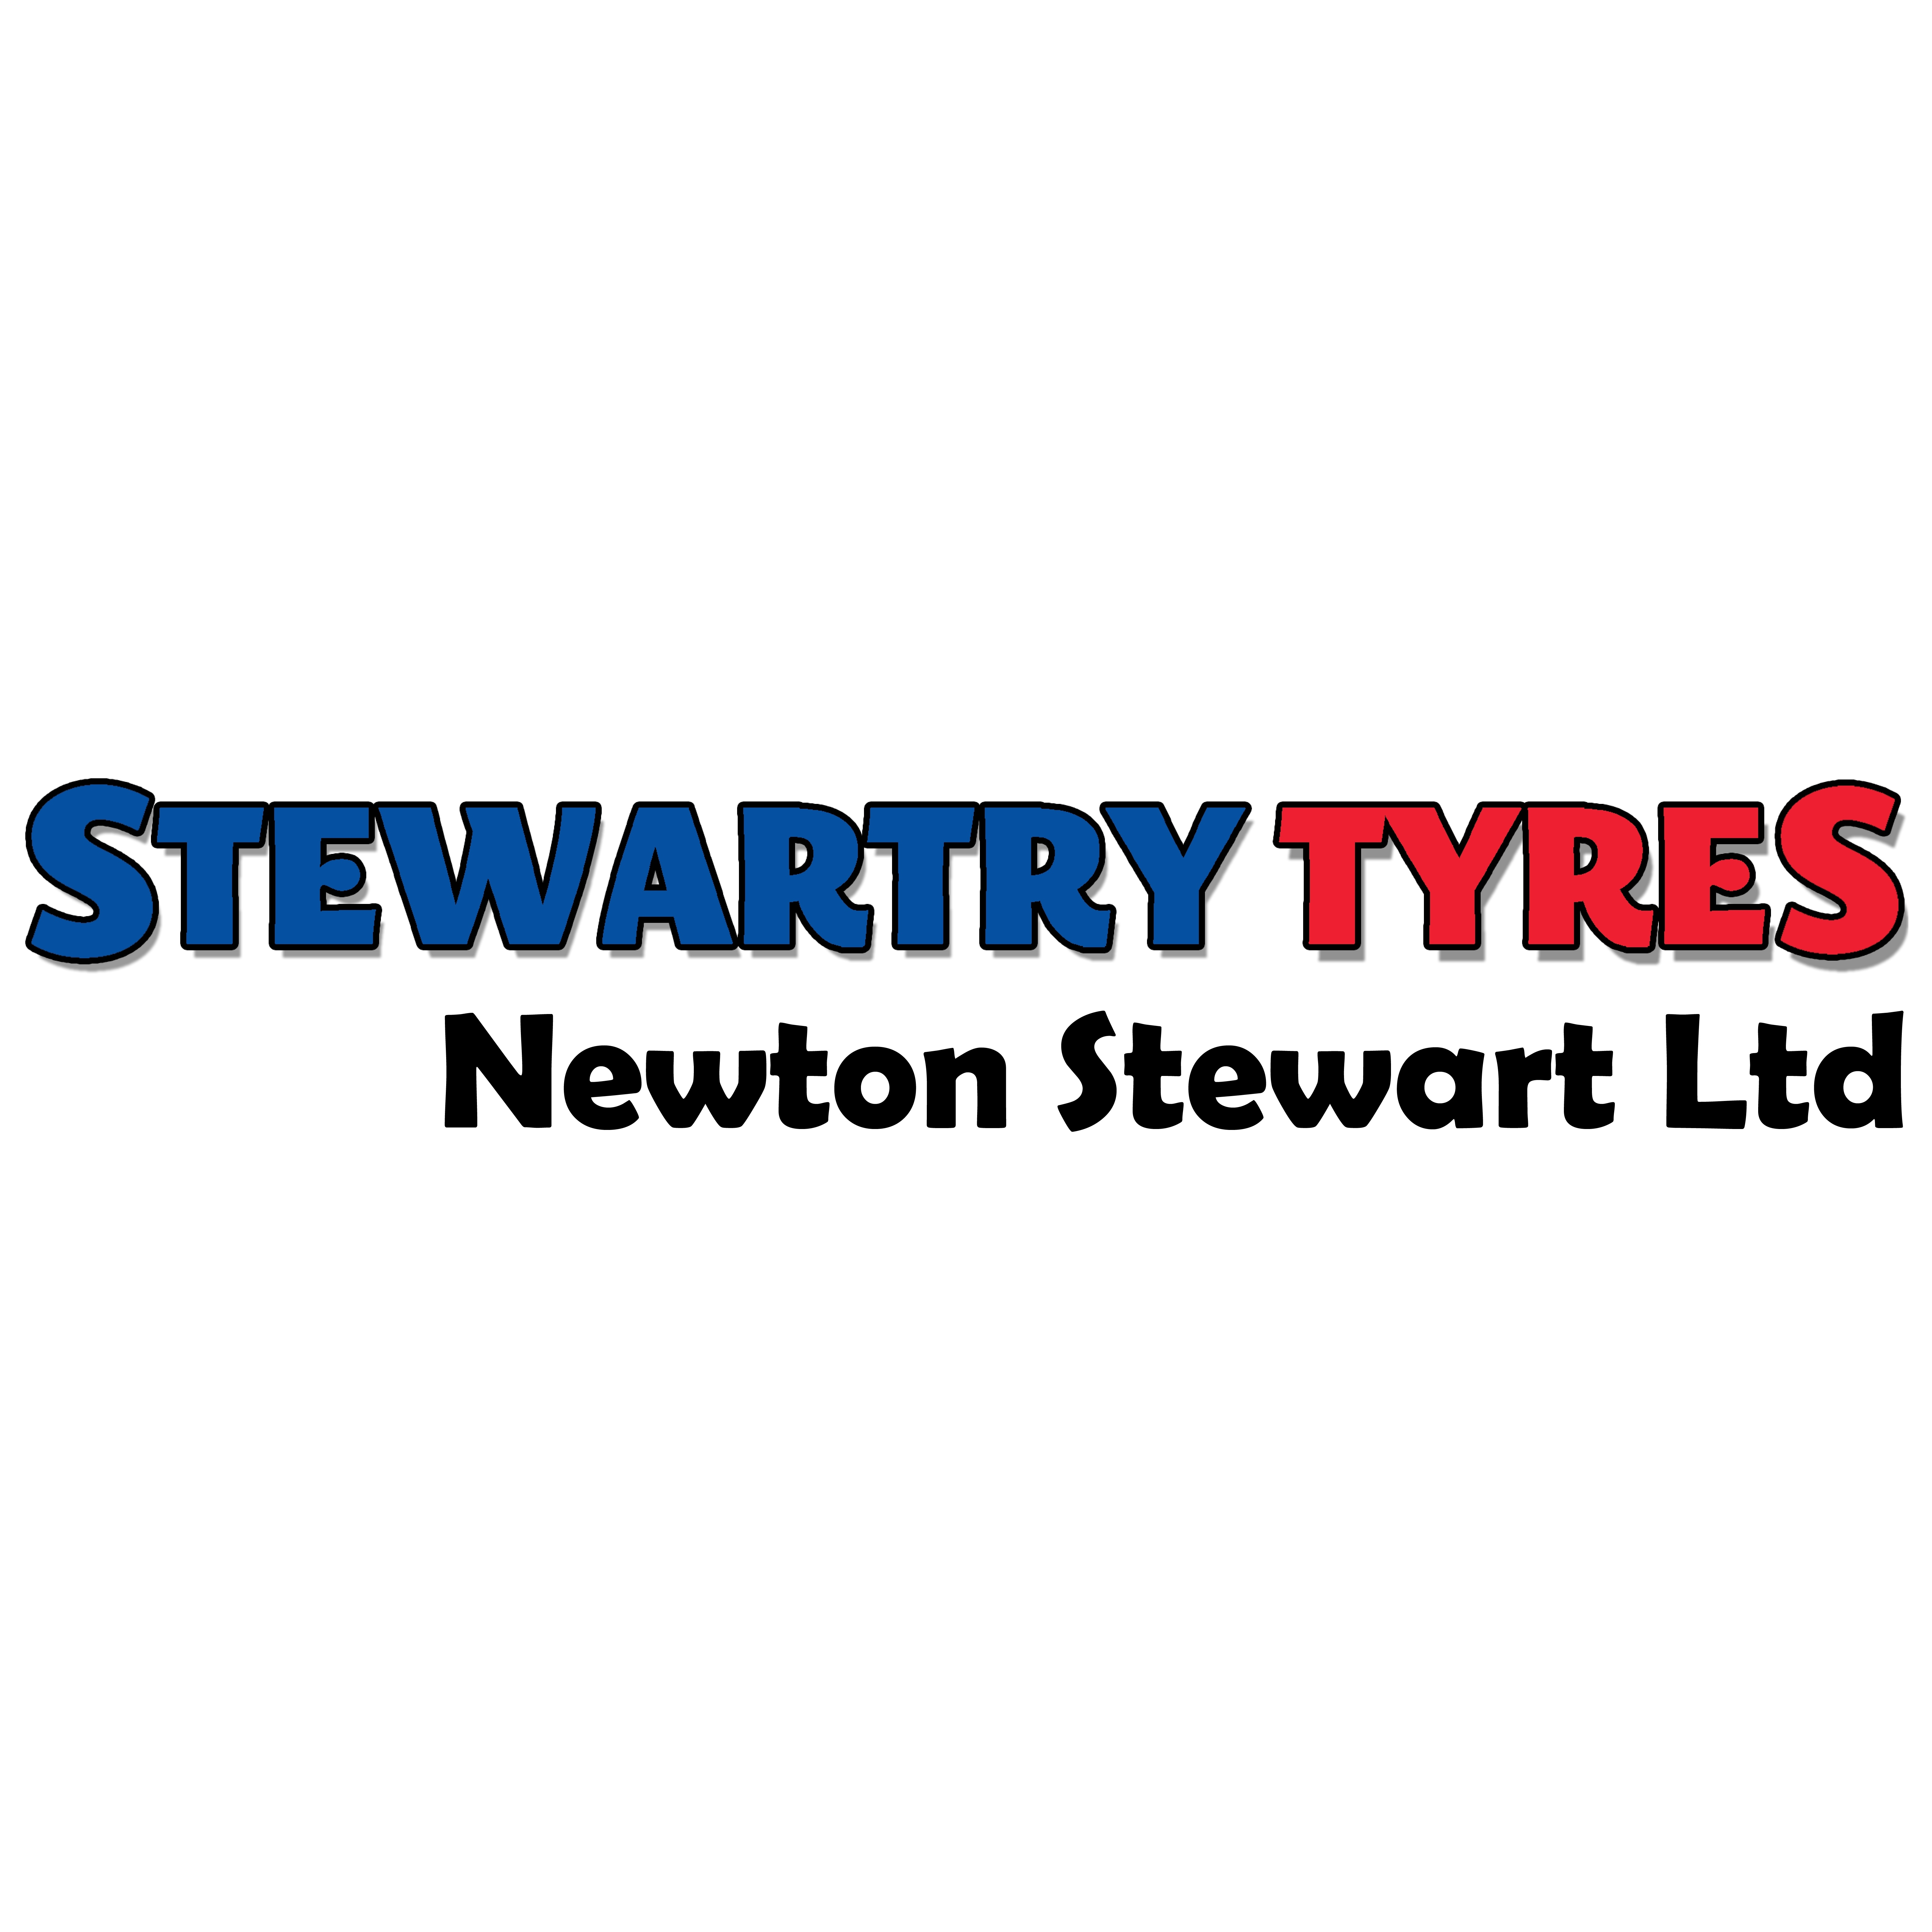 Stewartry Tyres Newton Stewart Ltd - Dumfries And Galloway, Dumfriesshire DG8 6JY - 01671 401112 | ShowMeLocal.com